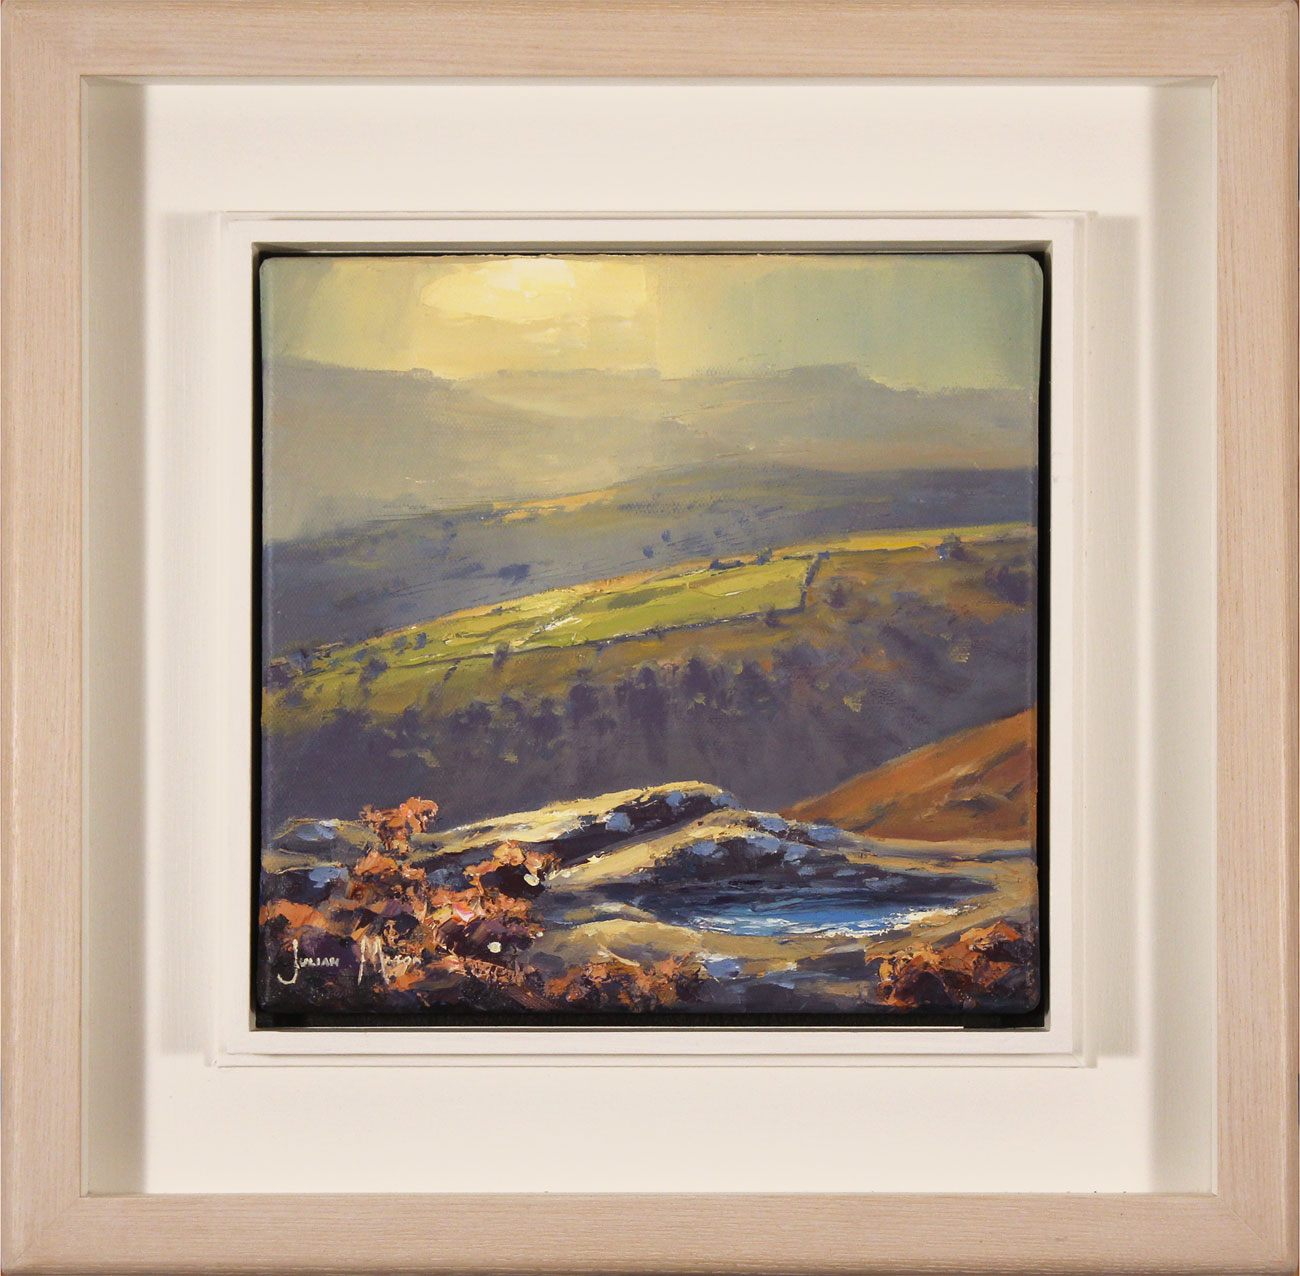 Julian Mason, Original oil painting on canvas, Grouse Pool, Derwent Edge, click to enlarge